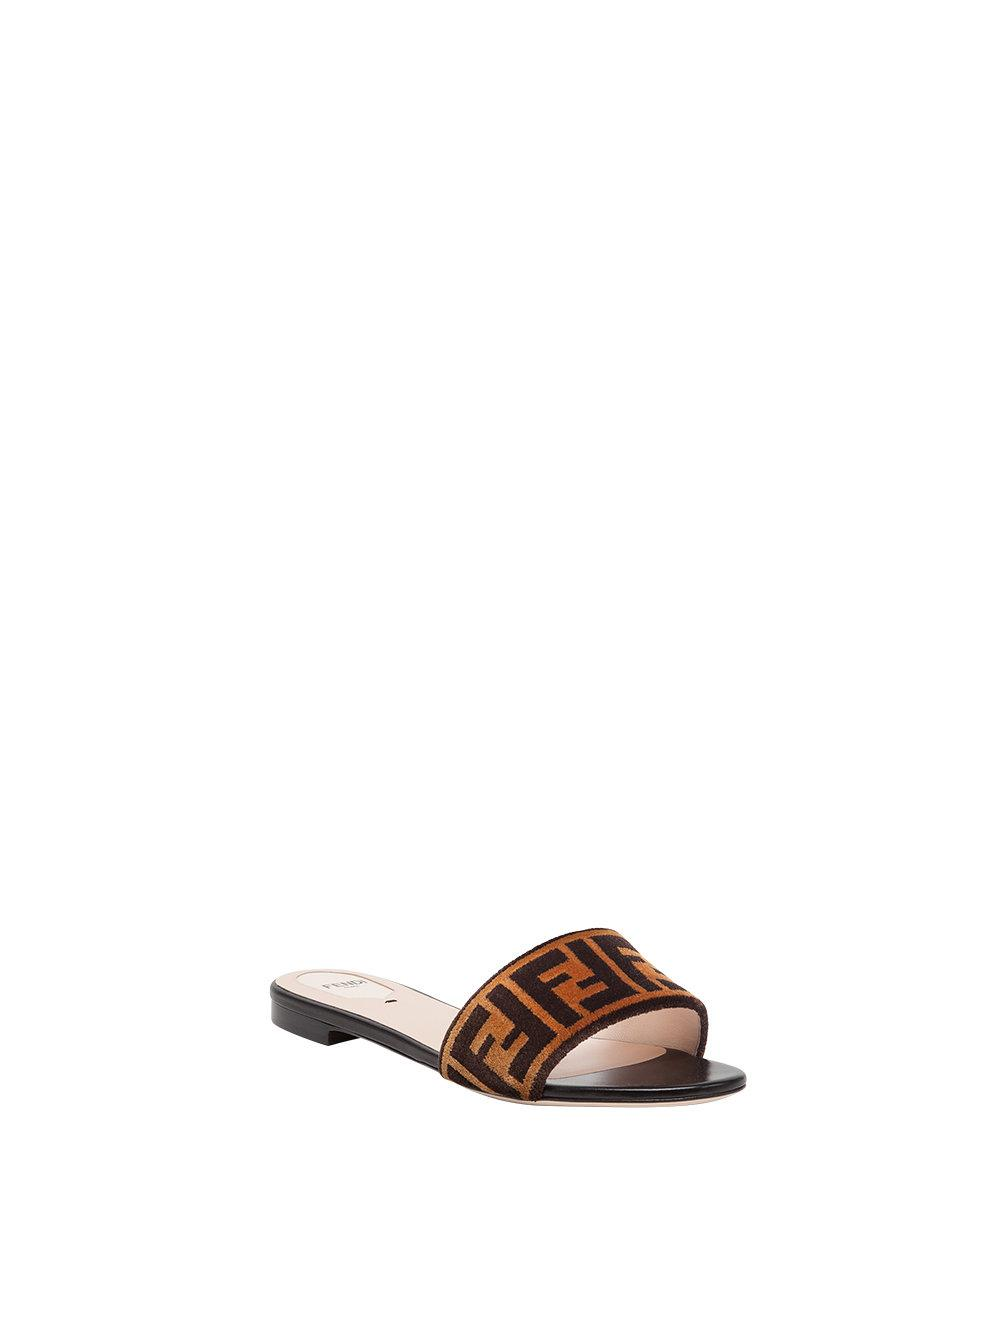 5260c70a302 Lyst - Fendi Open Toe Flat Sandals in Brown